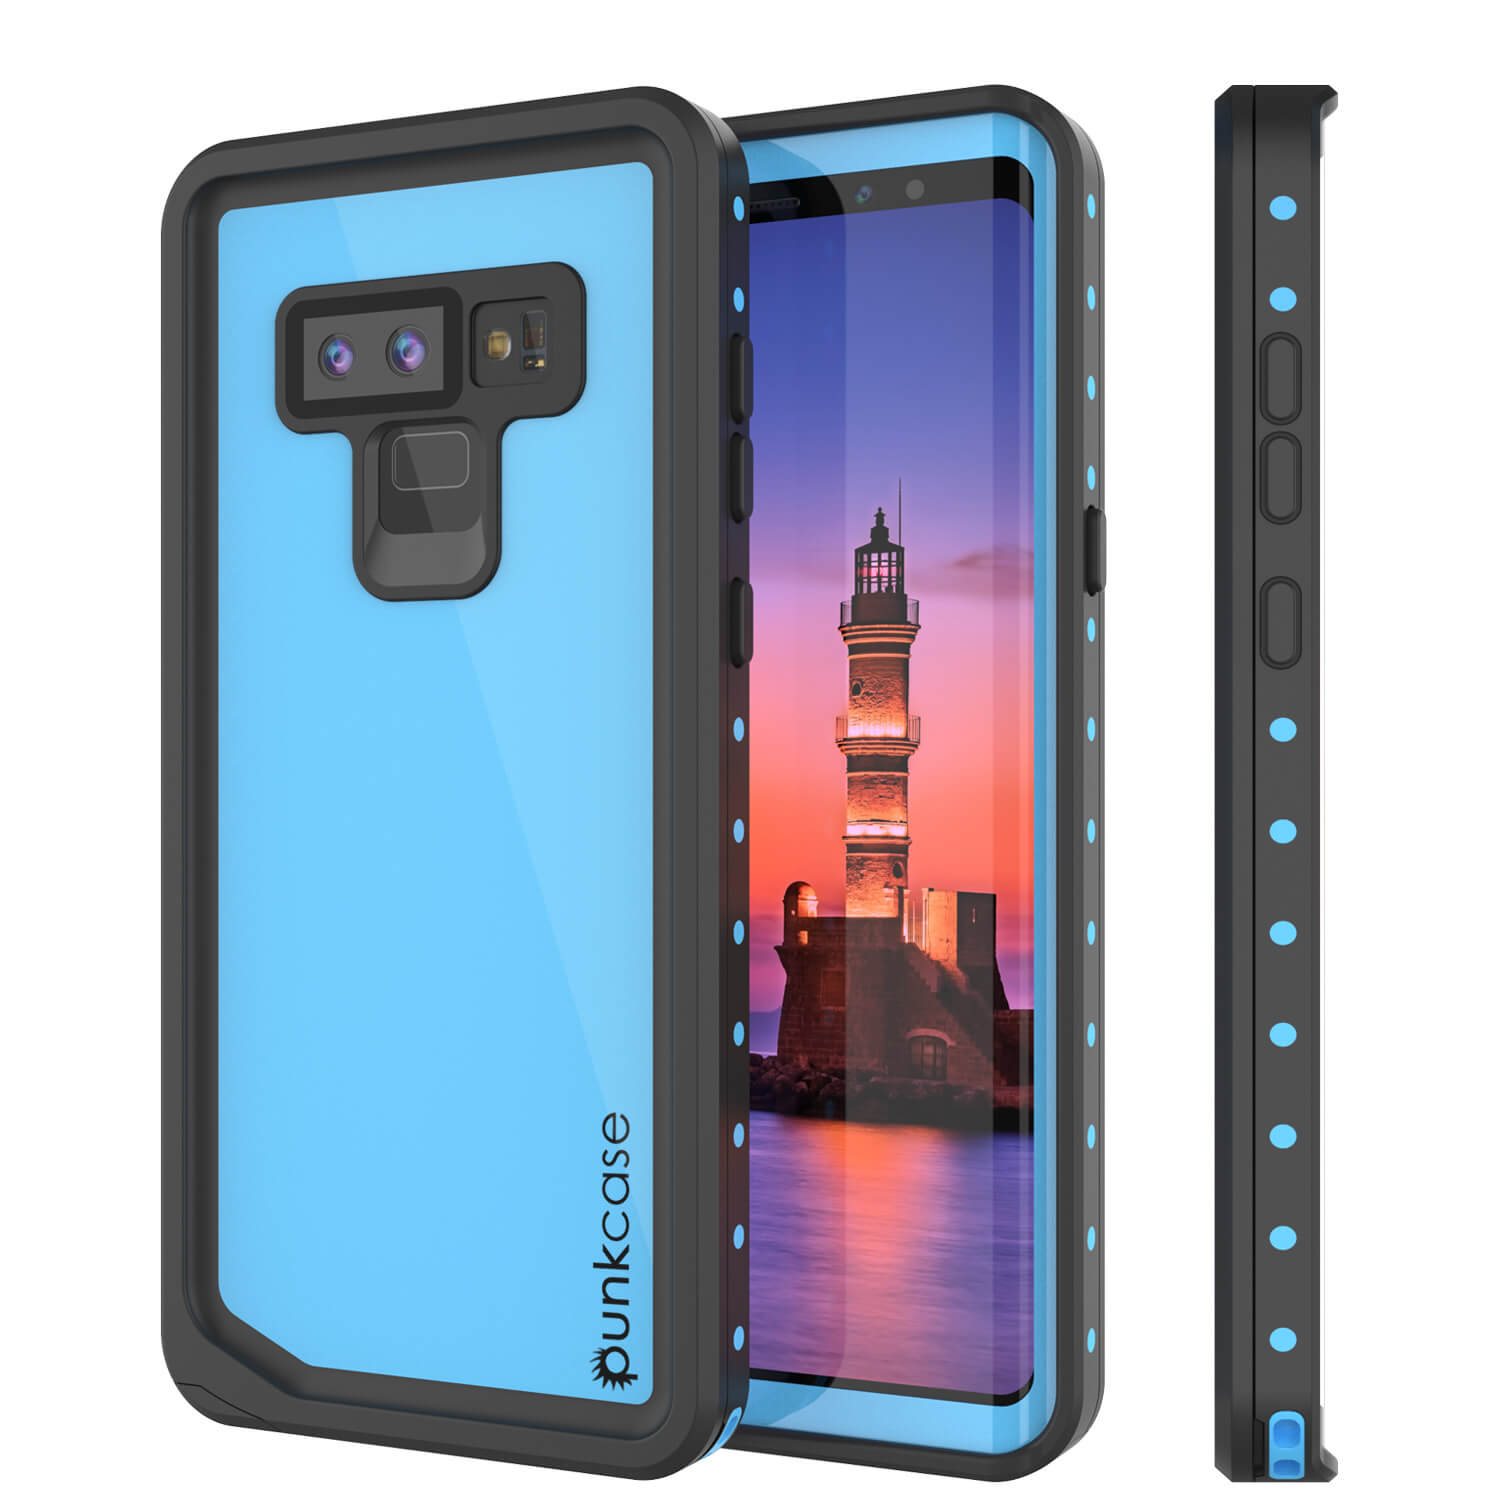 Galaxy Note 9 Waterproof Case, Punkcase Studstar Light Blue Thin Armor Cover